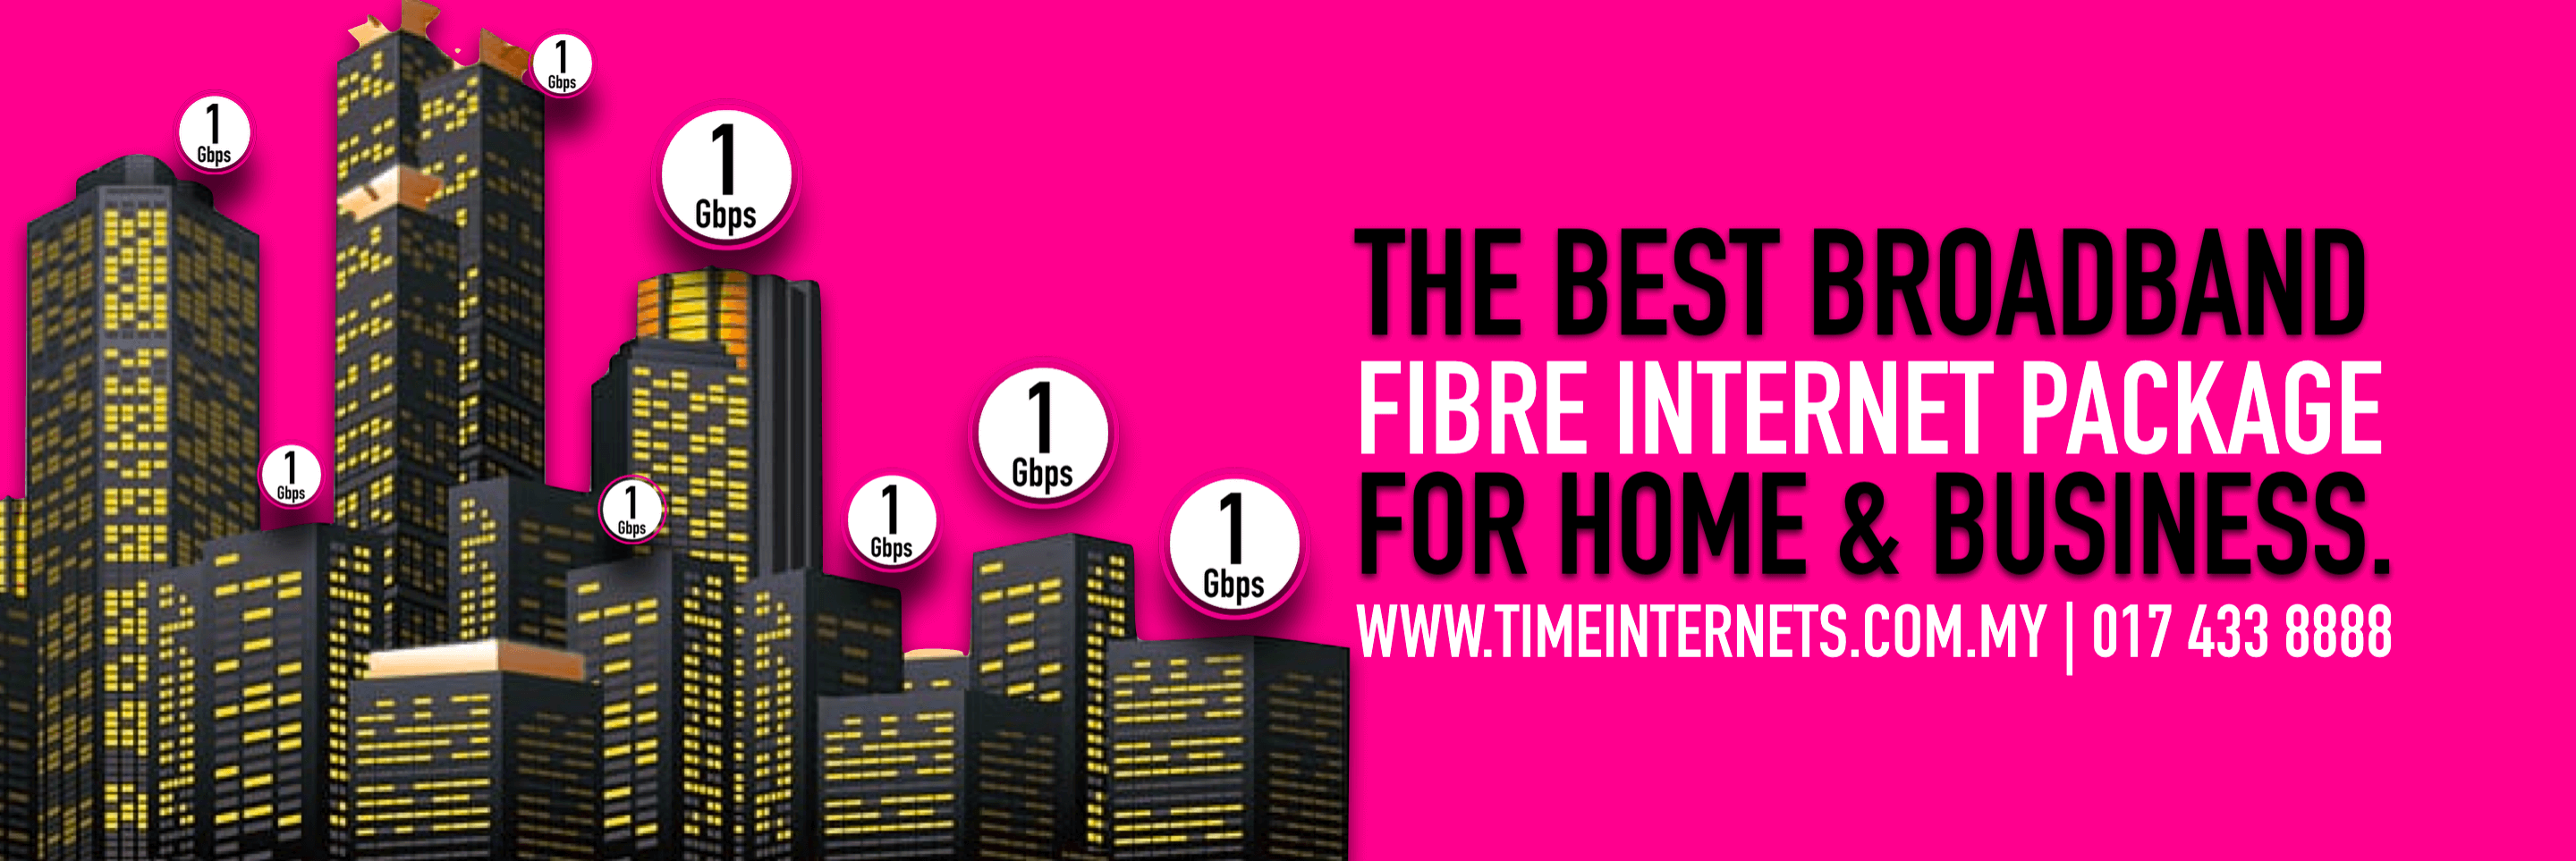 Time fibre interne